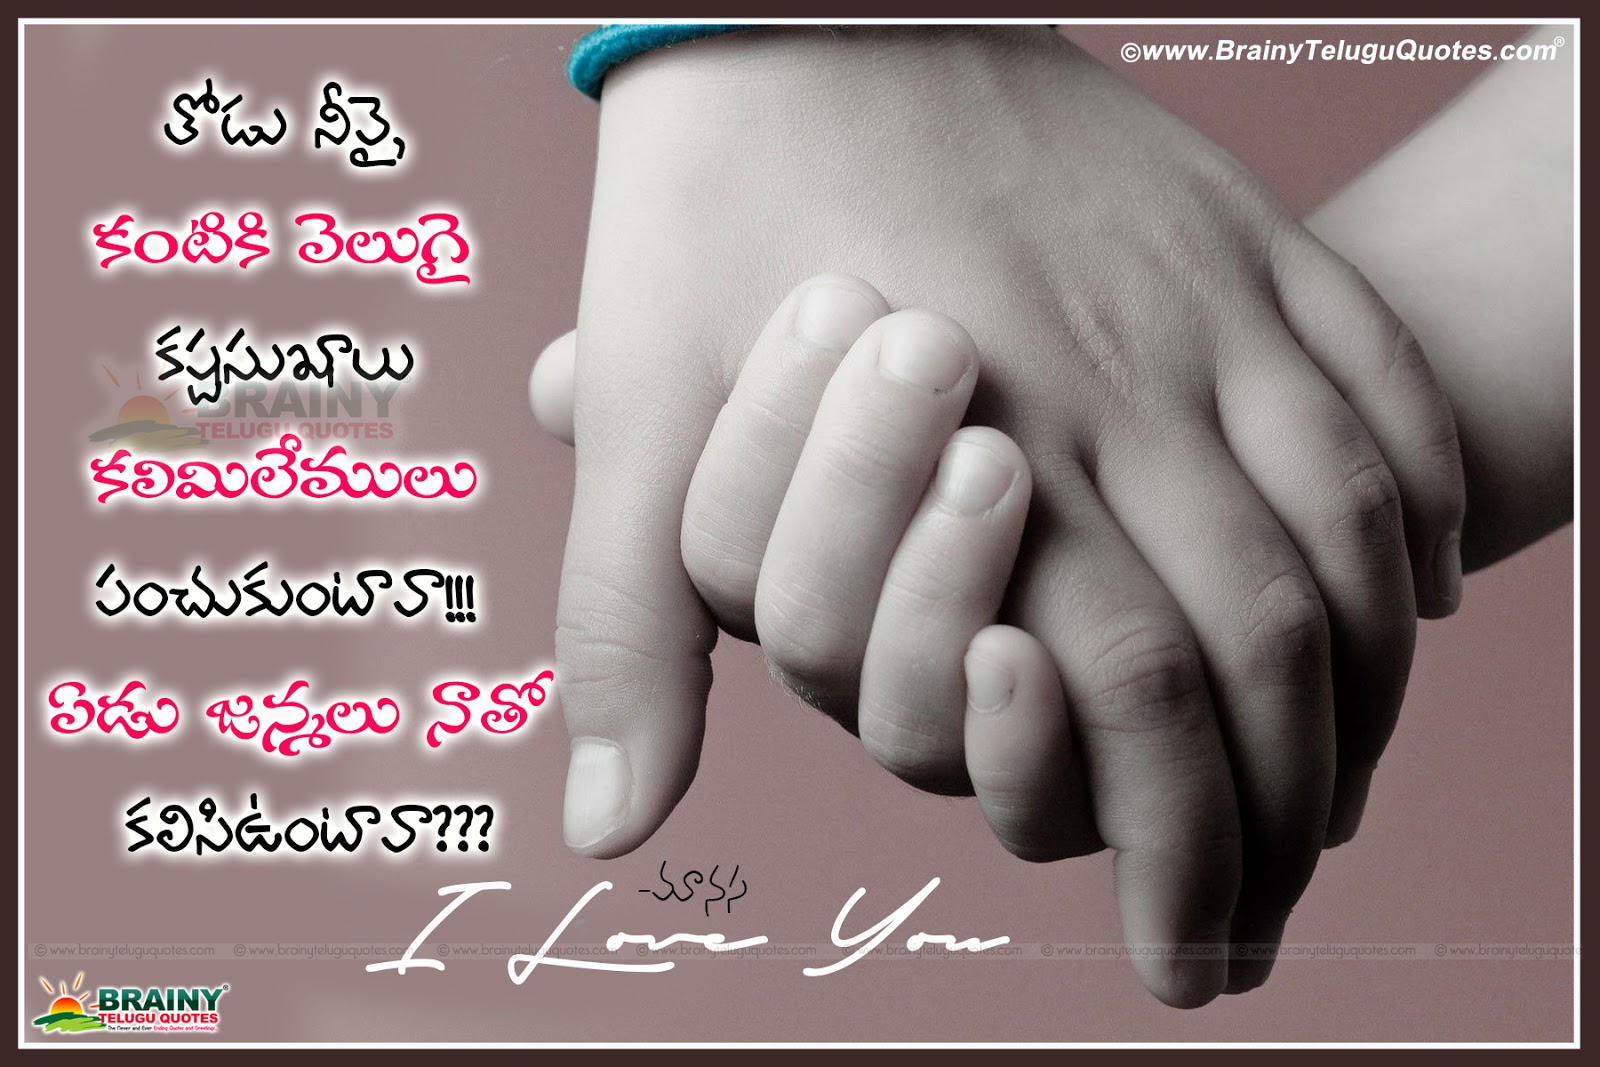 Here is a Telugu Whatsapp Love True Love Quotes and Messages for New Love